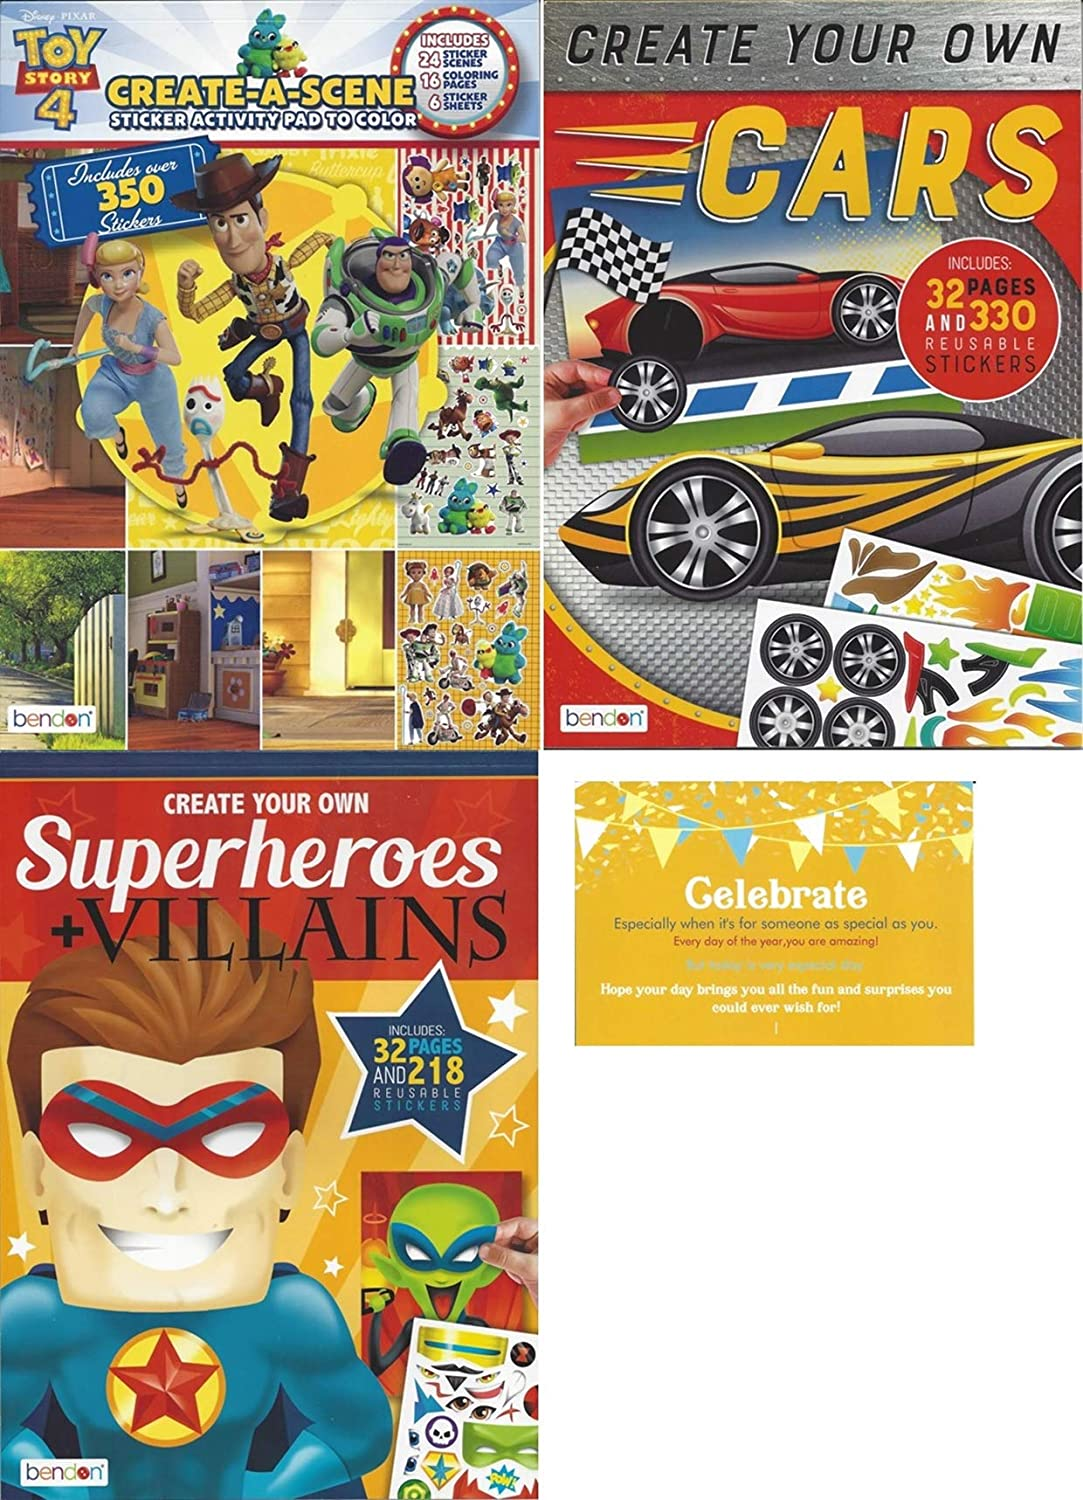 Create a Face Bundle with Celebrate Post Card. Includes 1 Toy Story Create a Scene, 1 Create Your Own Cars, 1 Create Your Own Superheroes and Villians